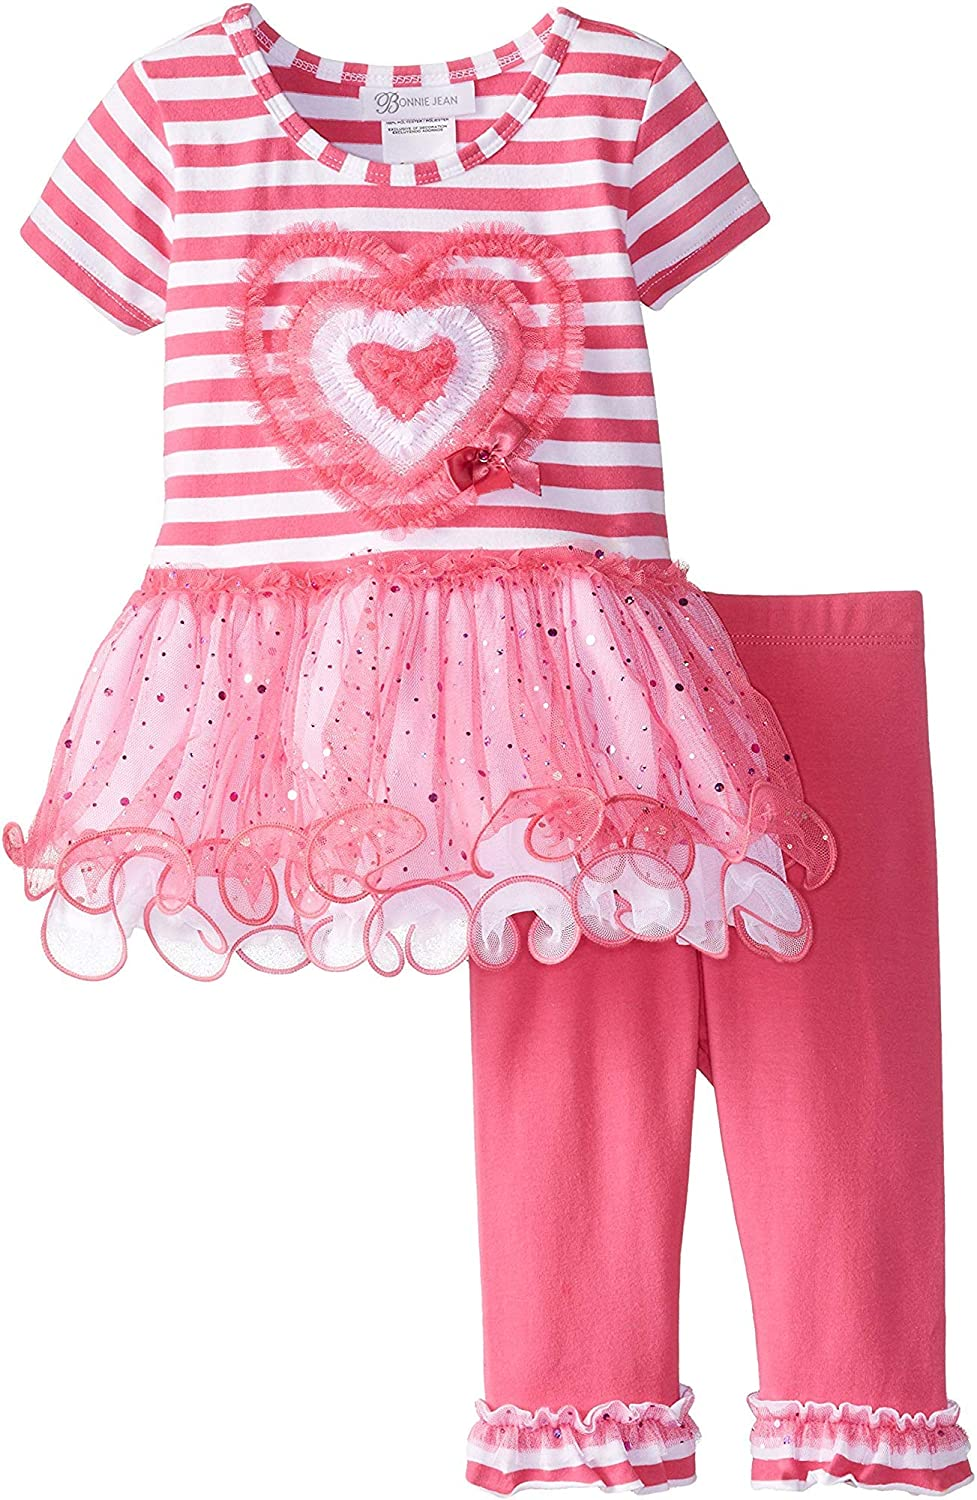 Bonnie Jean Baby Toddler and Little Girls Valentines Day Pink and Red Heart Tunic Shirt and Leggings Set